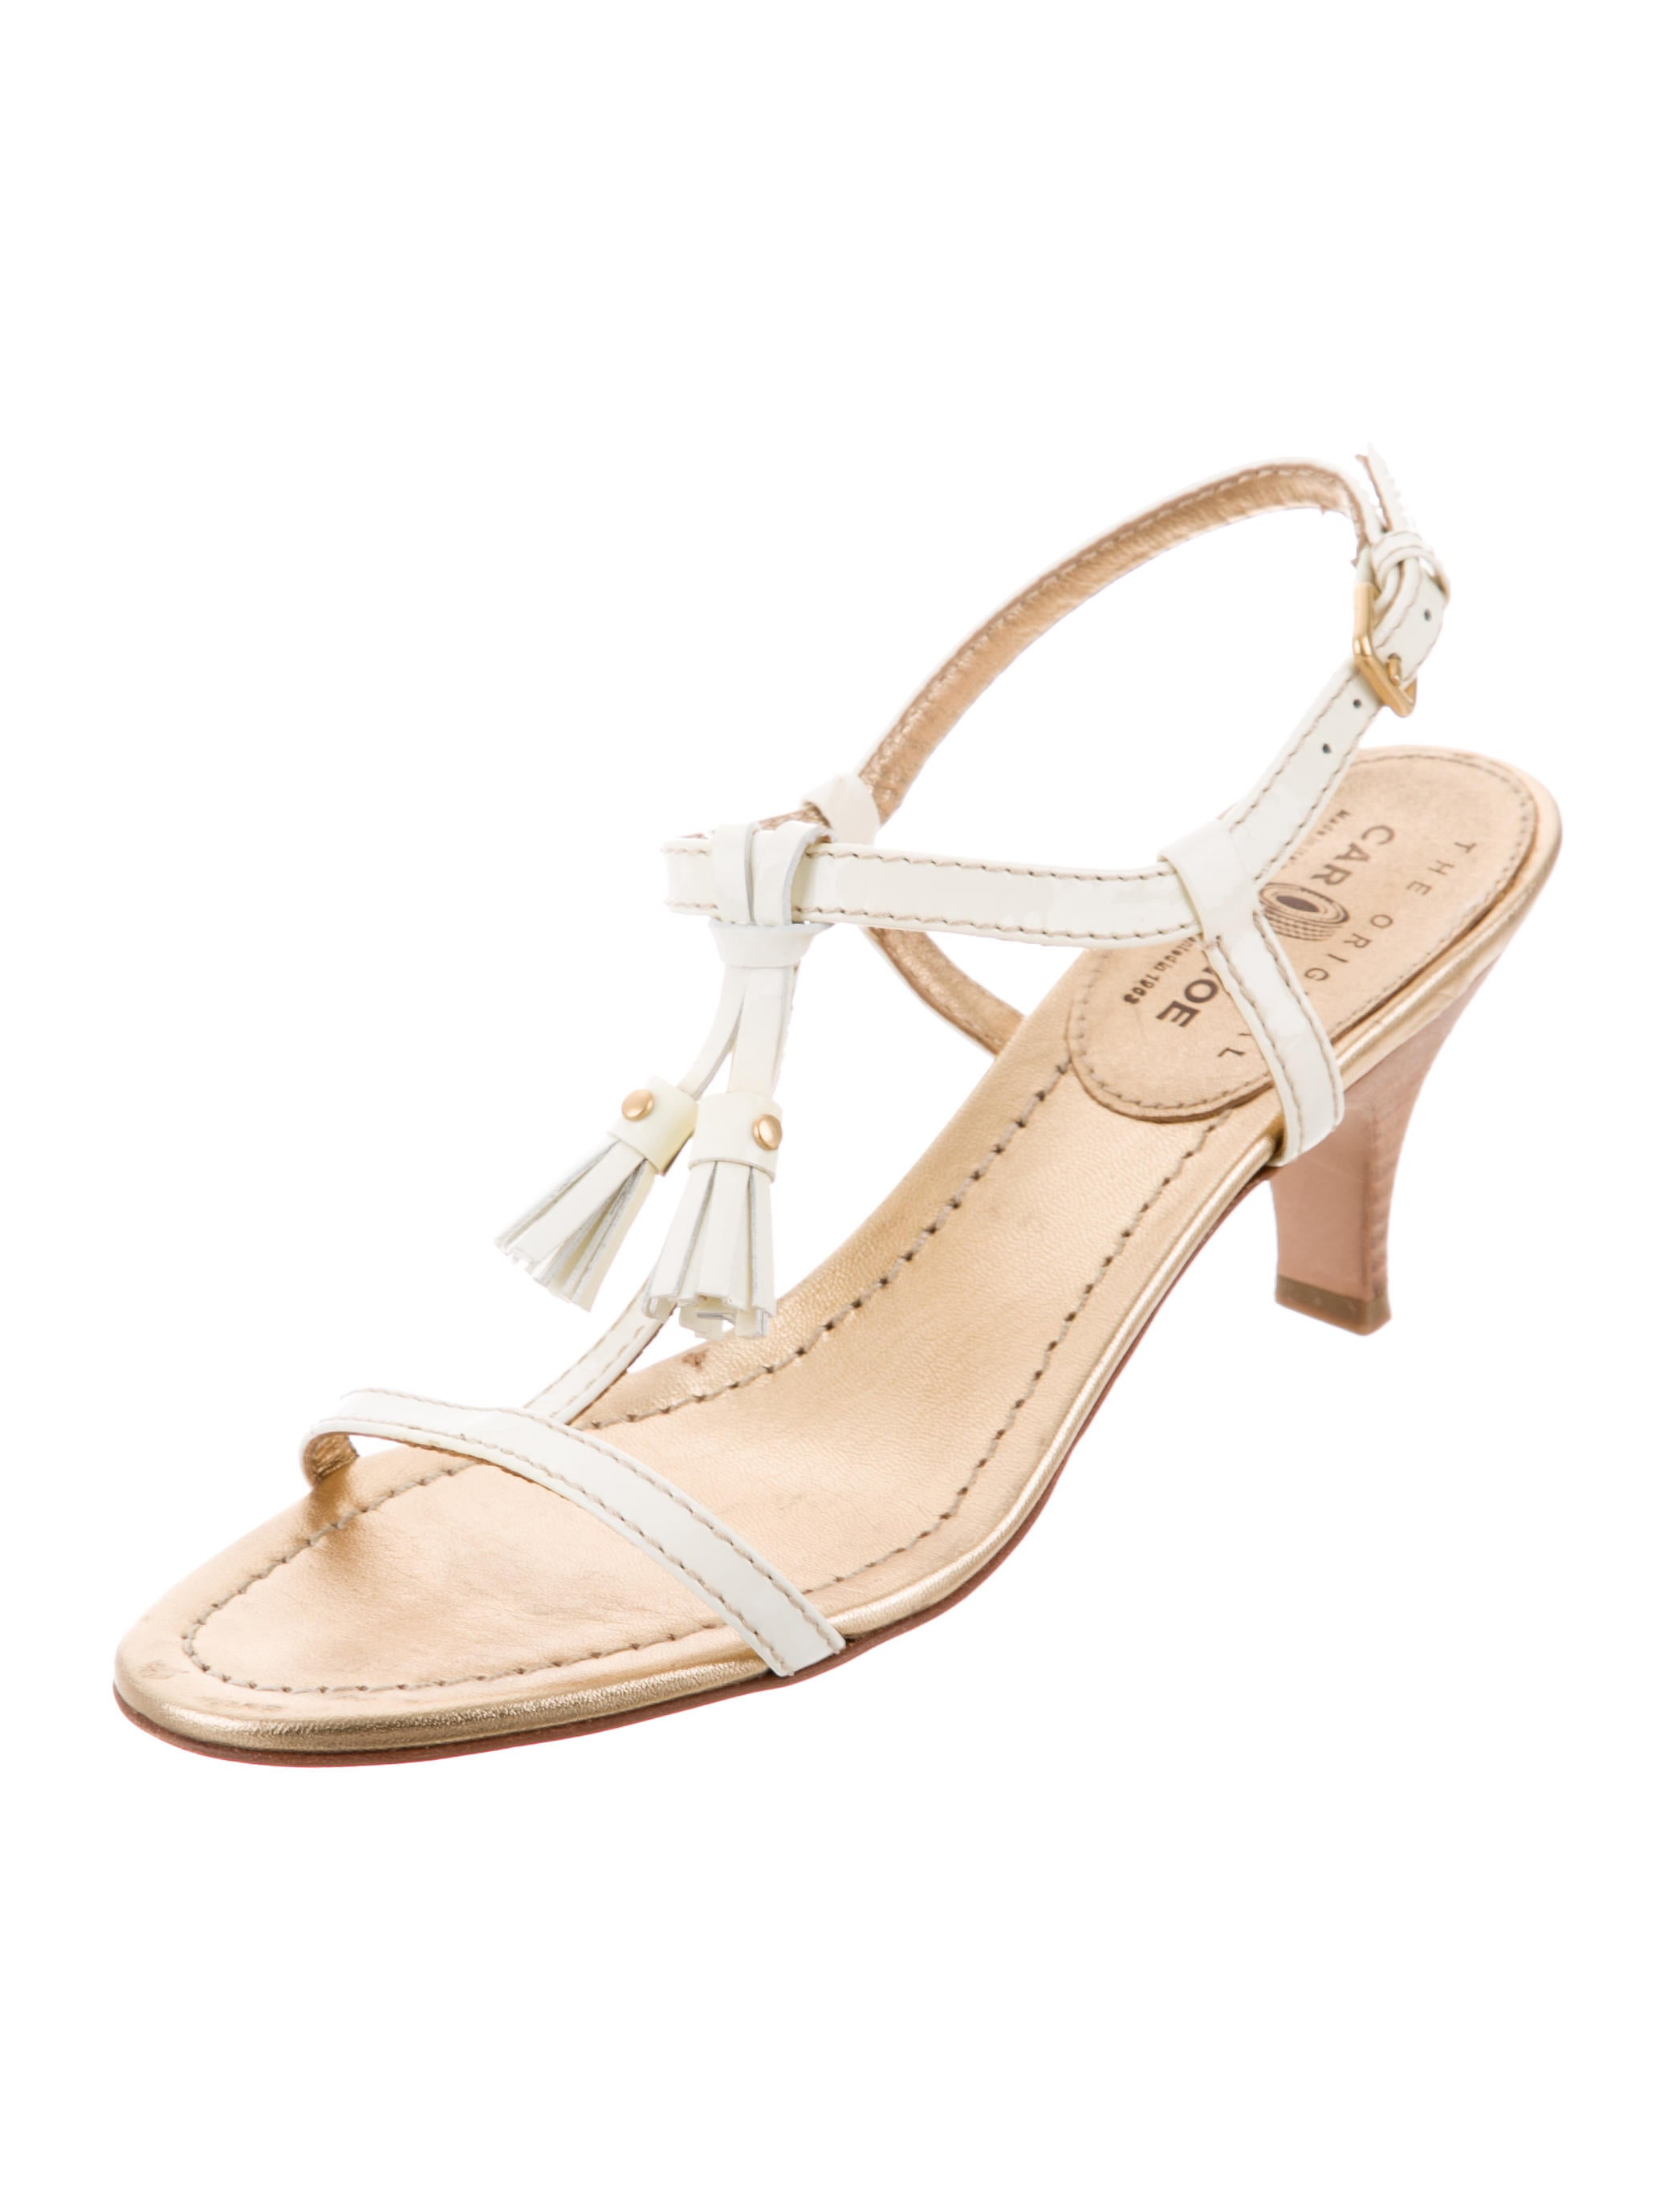 Car Shoe Tassel-Embellished Patent Leather Sandals countdown package sale online affordable sale online cheap sale buy authentic really cheap online FBlvI